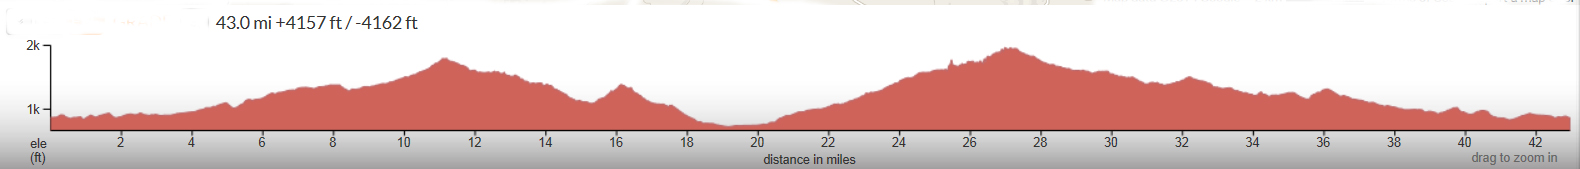 Templeton-Paso-Loop-Elevation-Profile.jpg